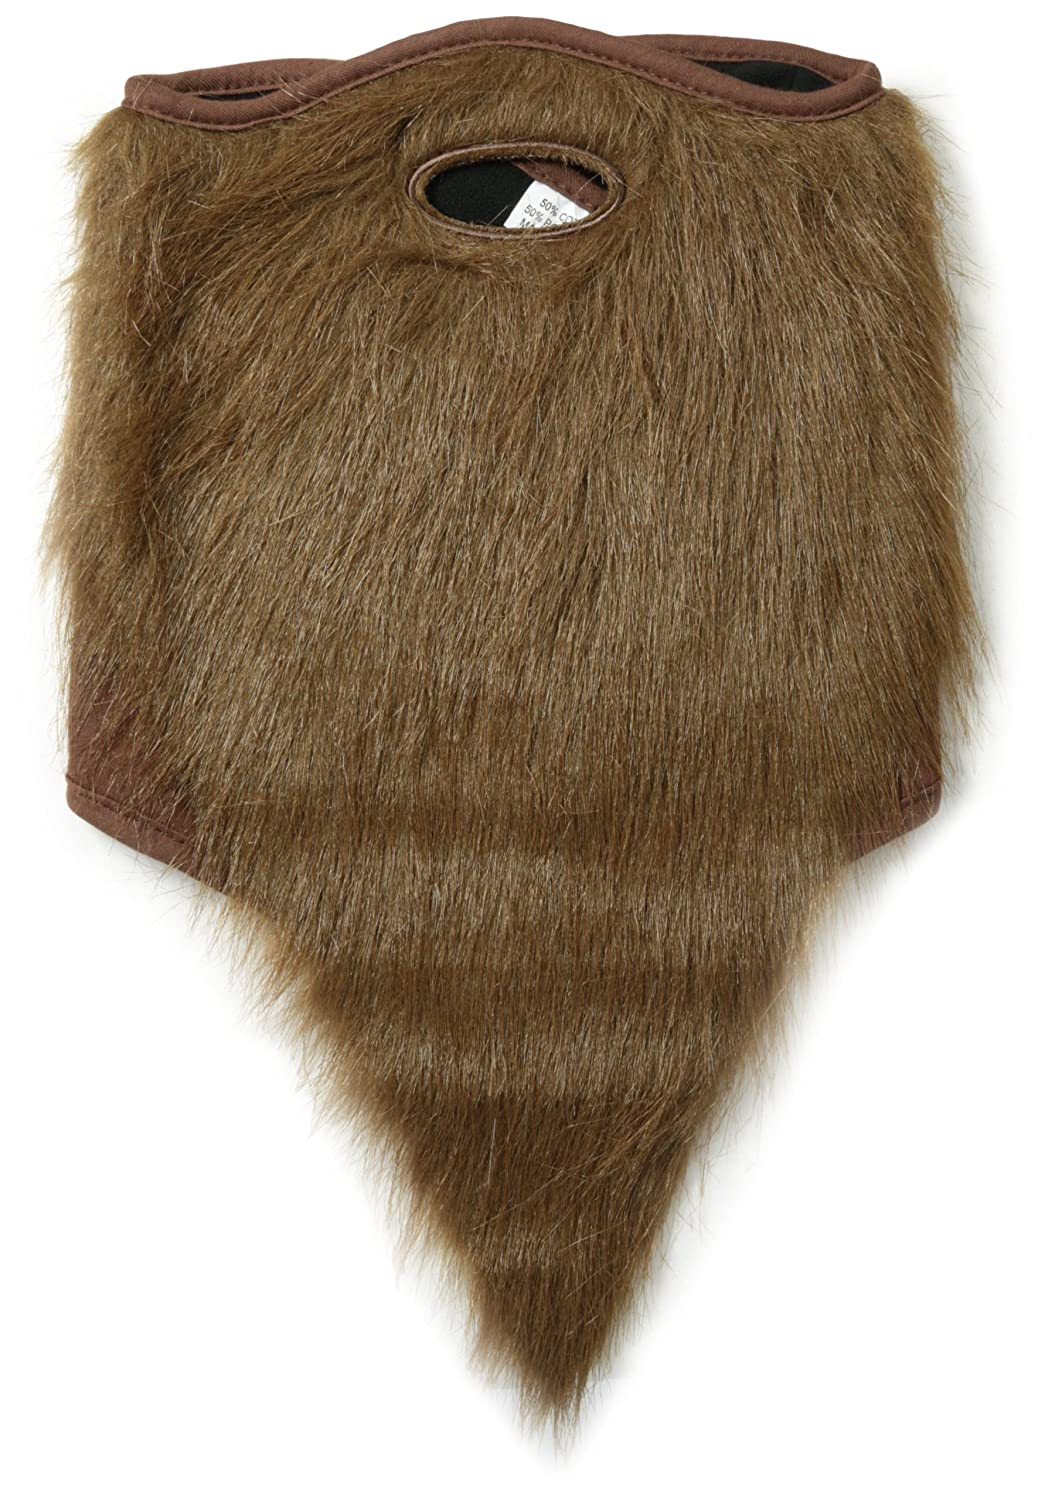 neff Men's Bearded Mask neff Men's Bearded Mask Brown One Size Neff Young Men's